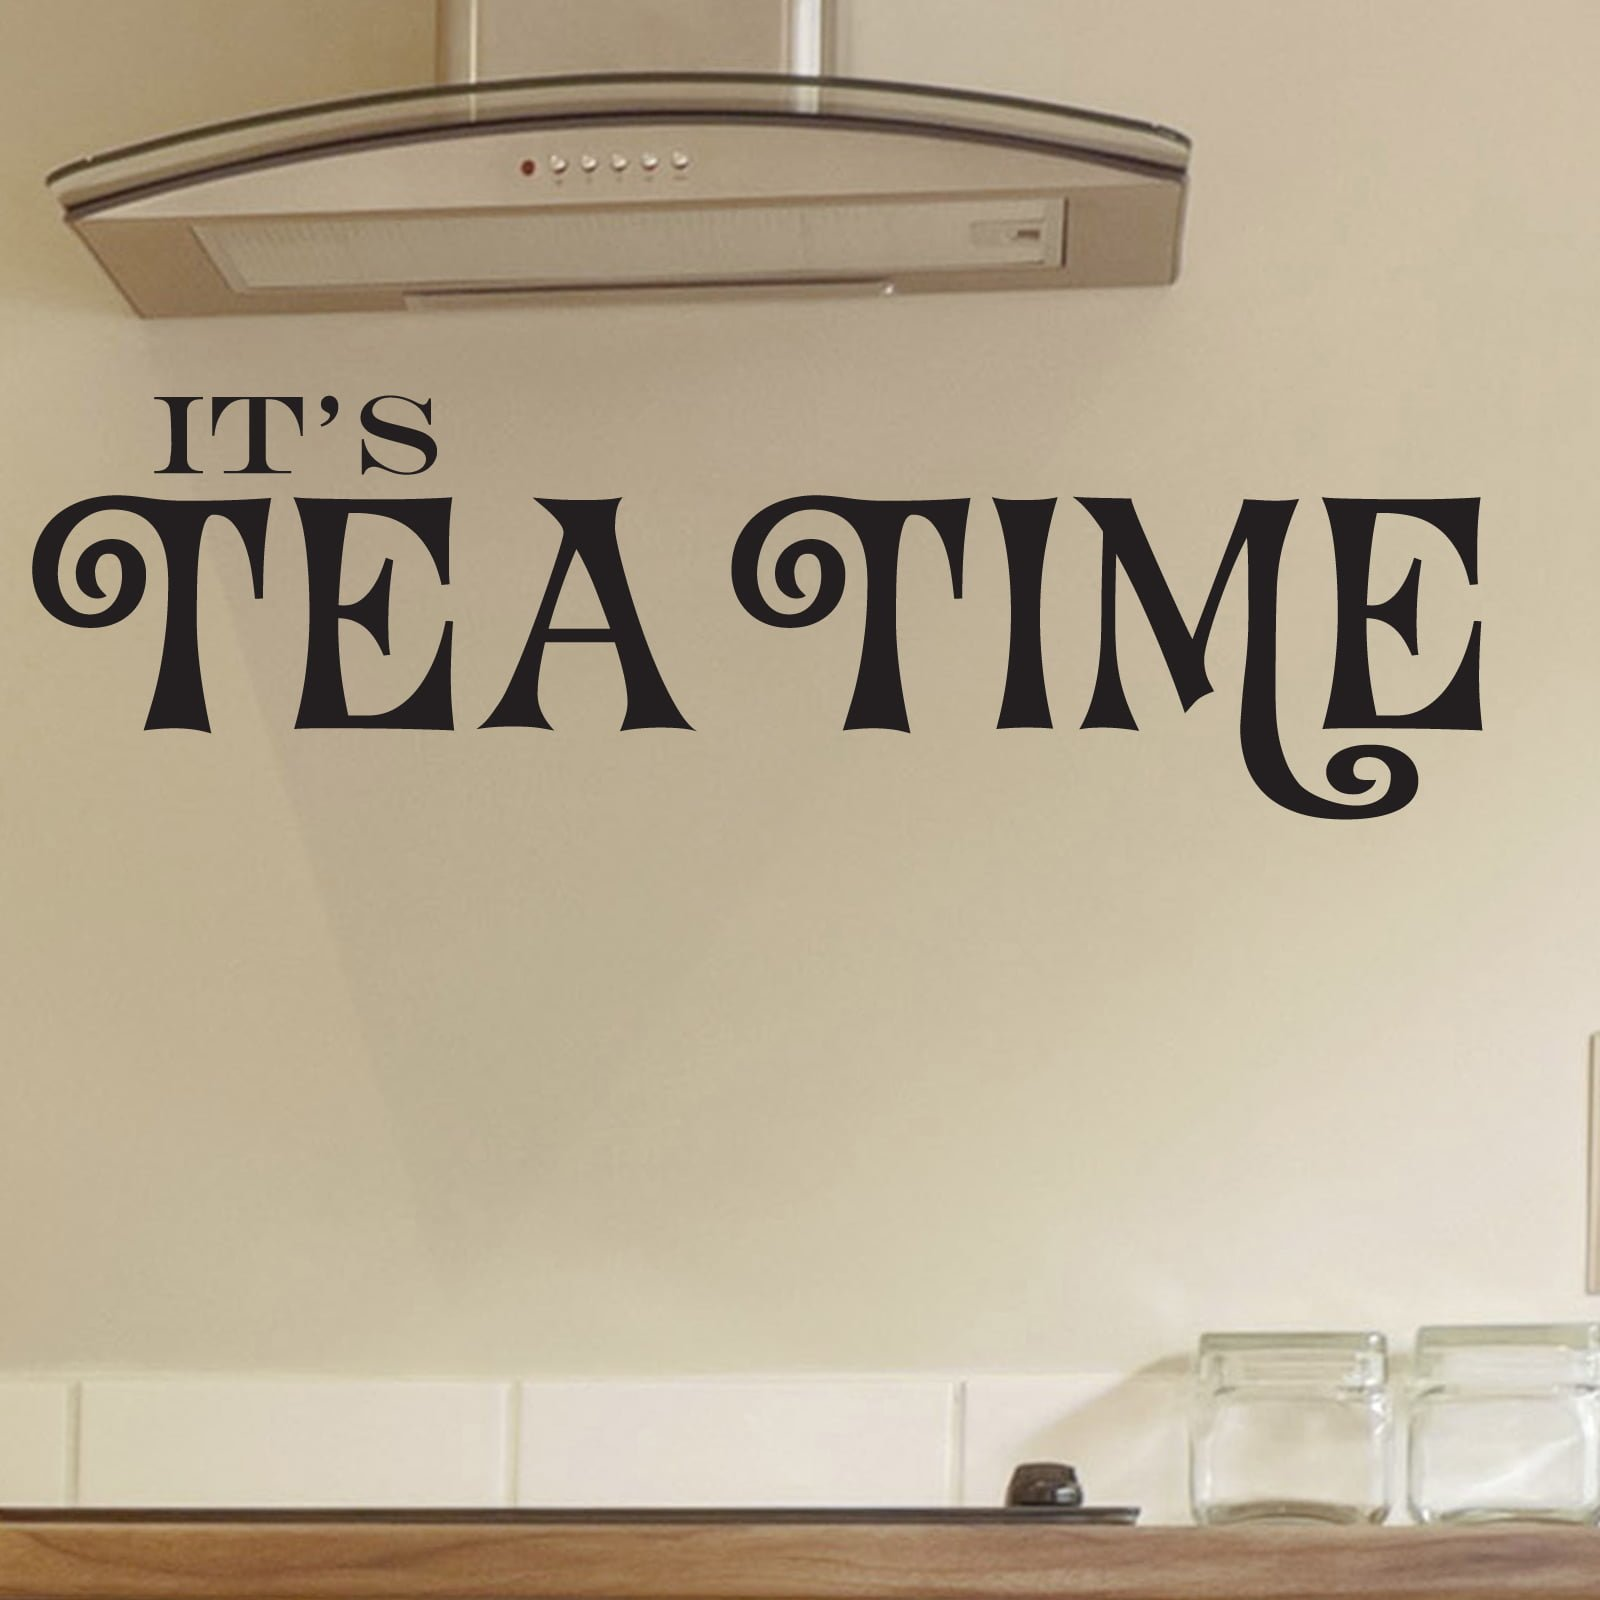 its tea time kitchen quote wall sticker world of wall stickers its tea time kitchen quote wall sticker decal a